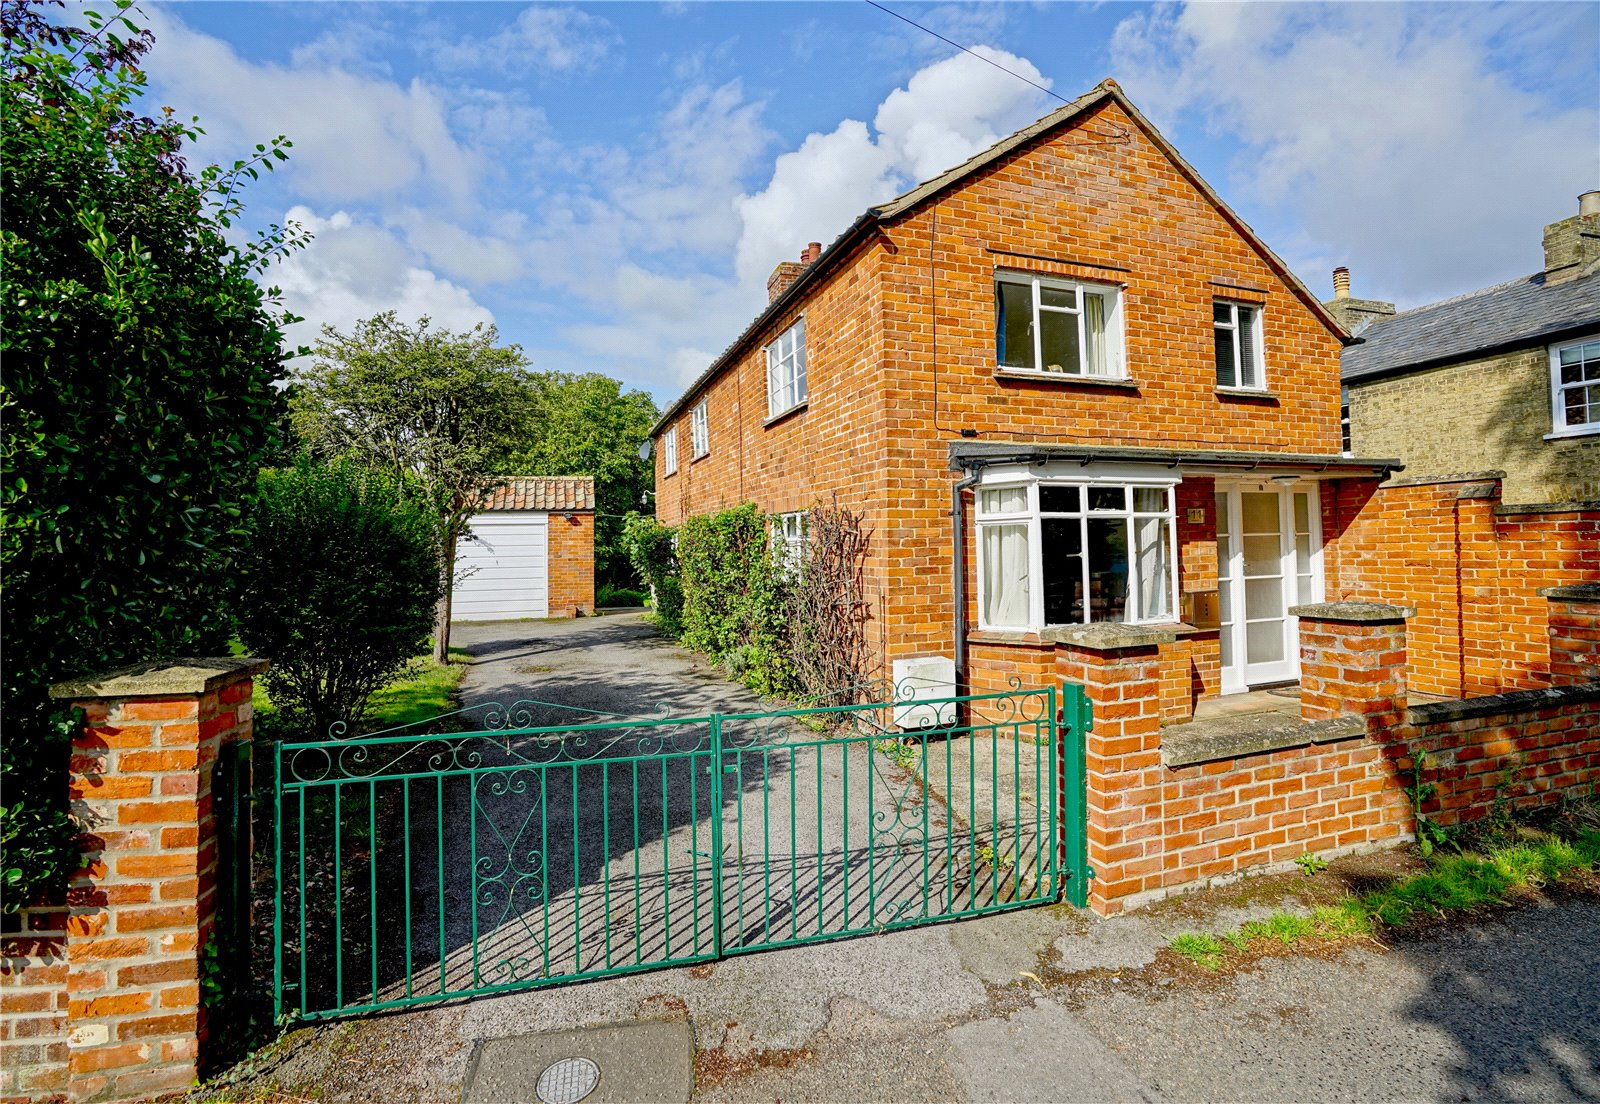 4 bed house for sale in Buckden 13